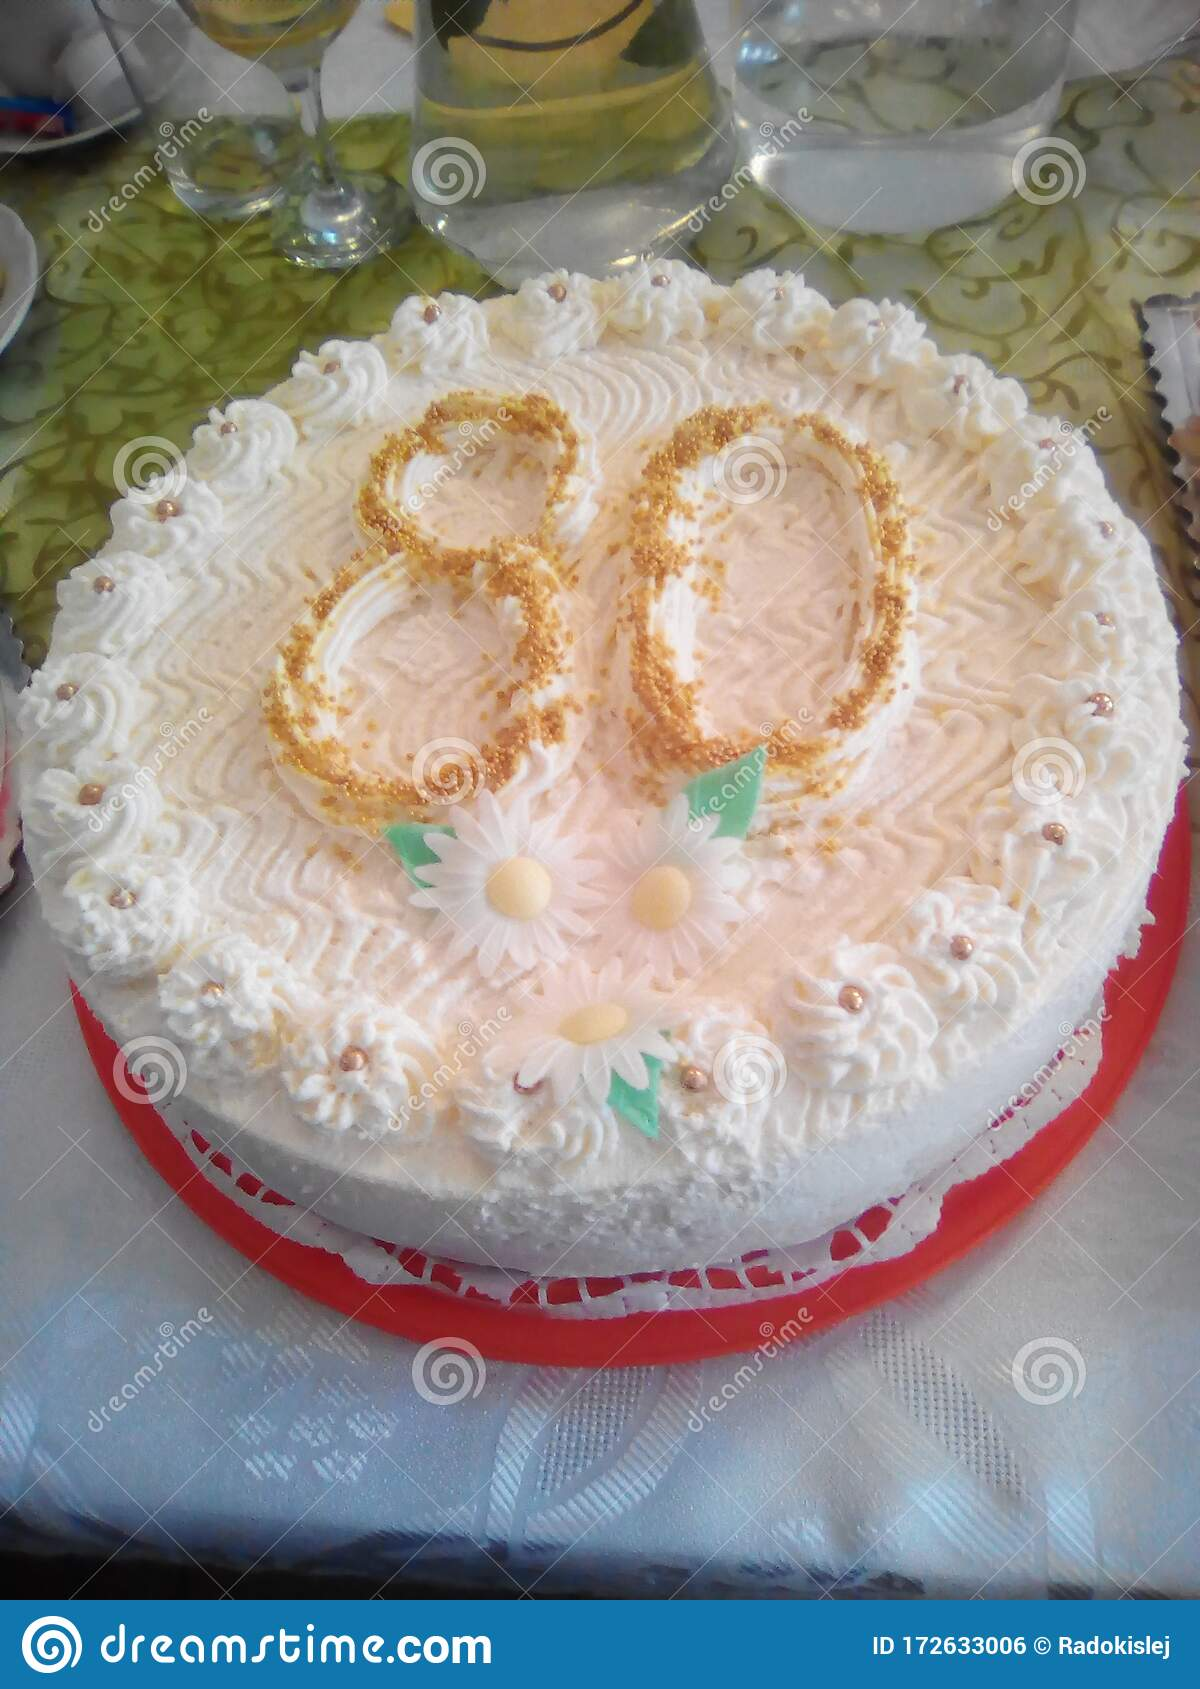 Miraculous 80Th Birthday Cake We Will Not Follow The Diet Stock Photo Funny Birthday Cards Online Alyptdamsfinfo